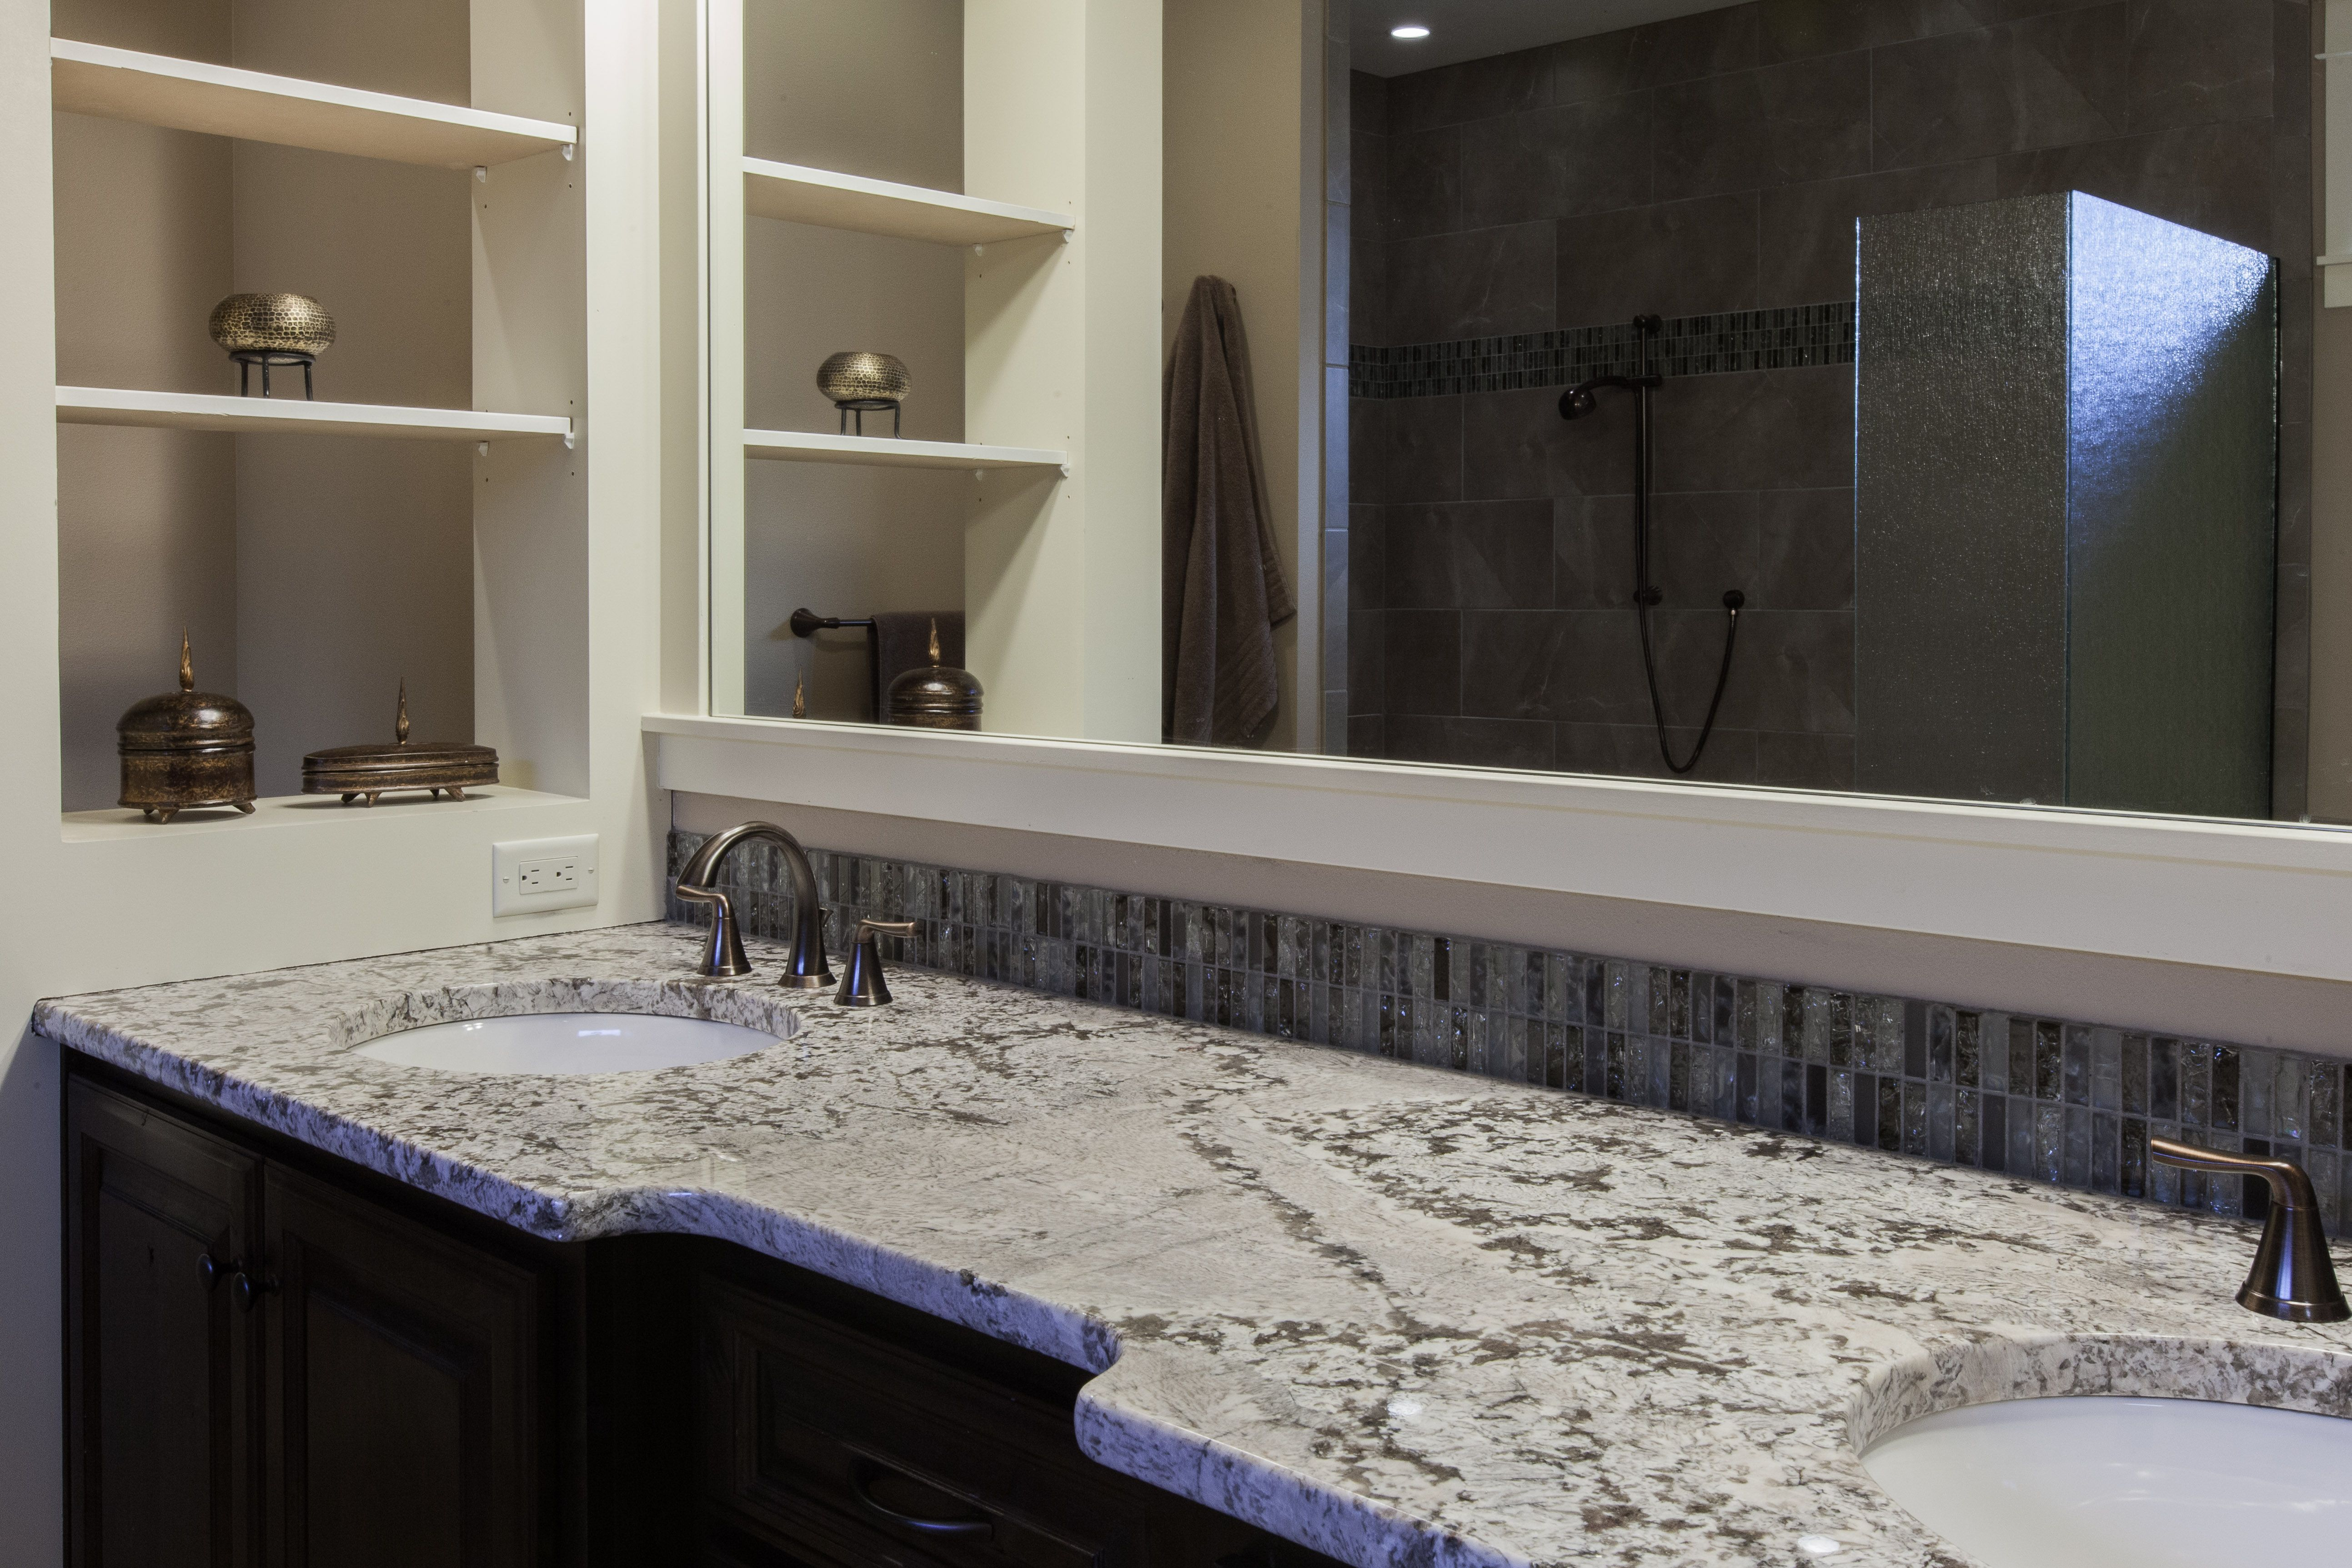 Dual sinks in the master bath. Love the counters and tile